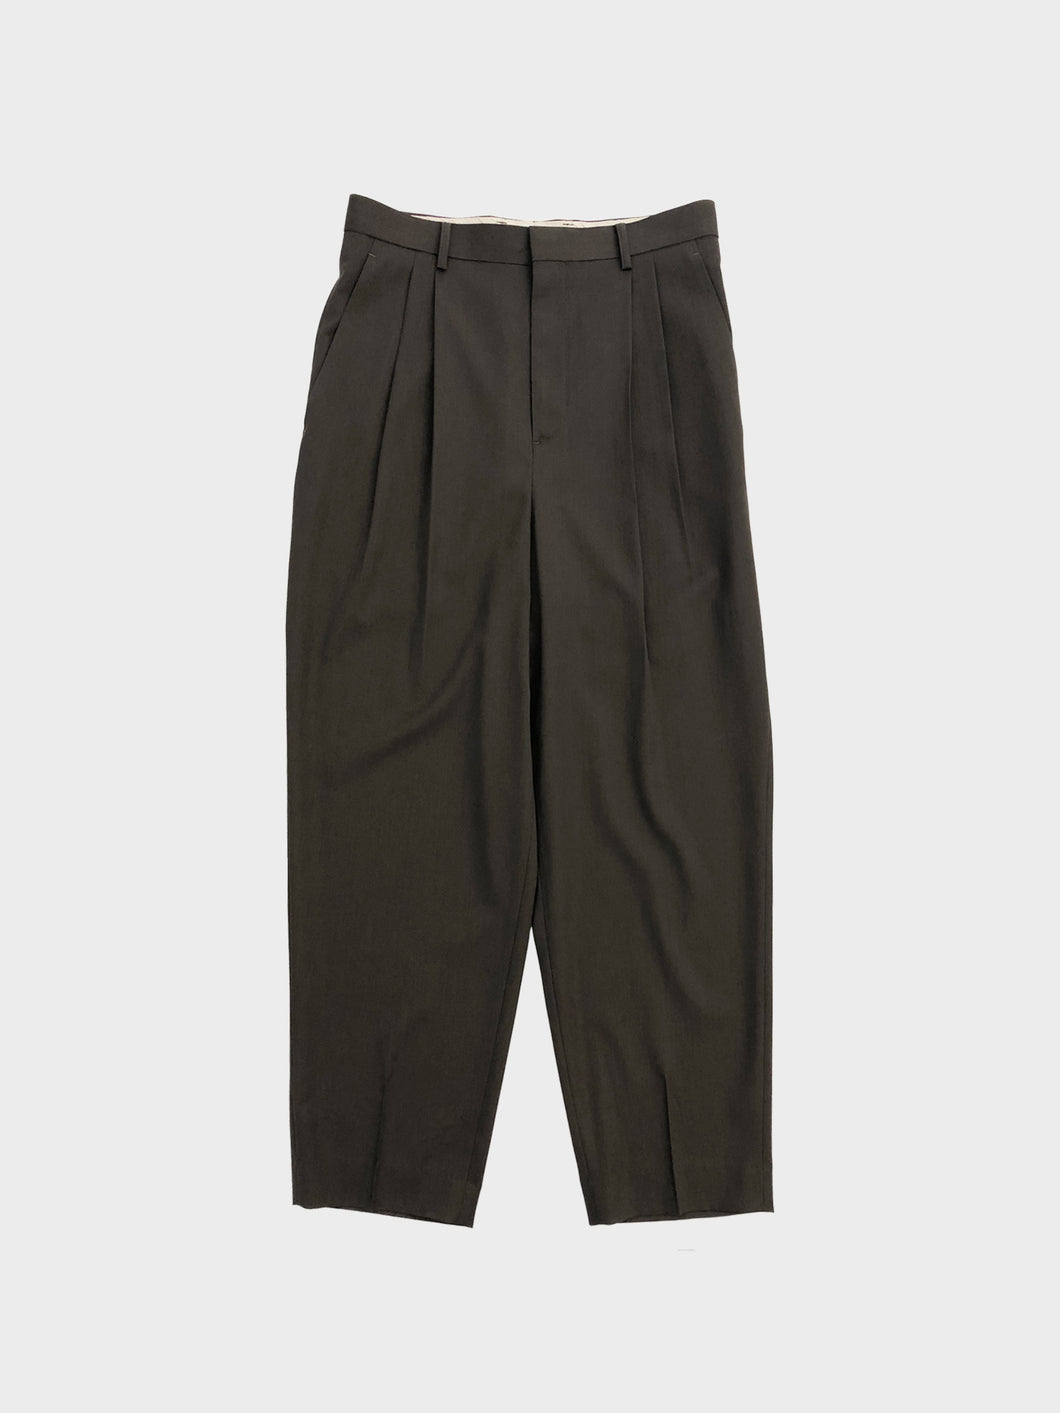 DIGAWEL / 2Tuck Tapered Pants② (OLIVE)